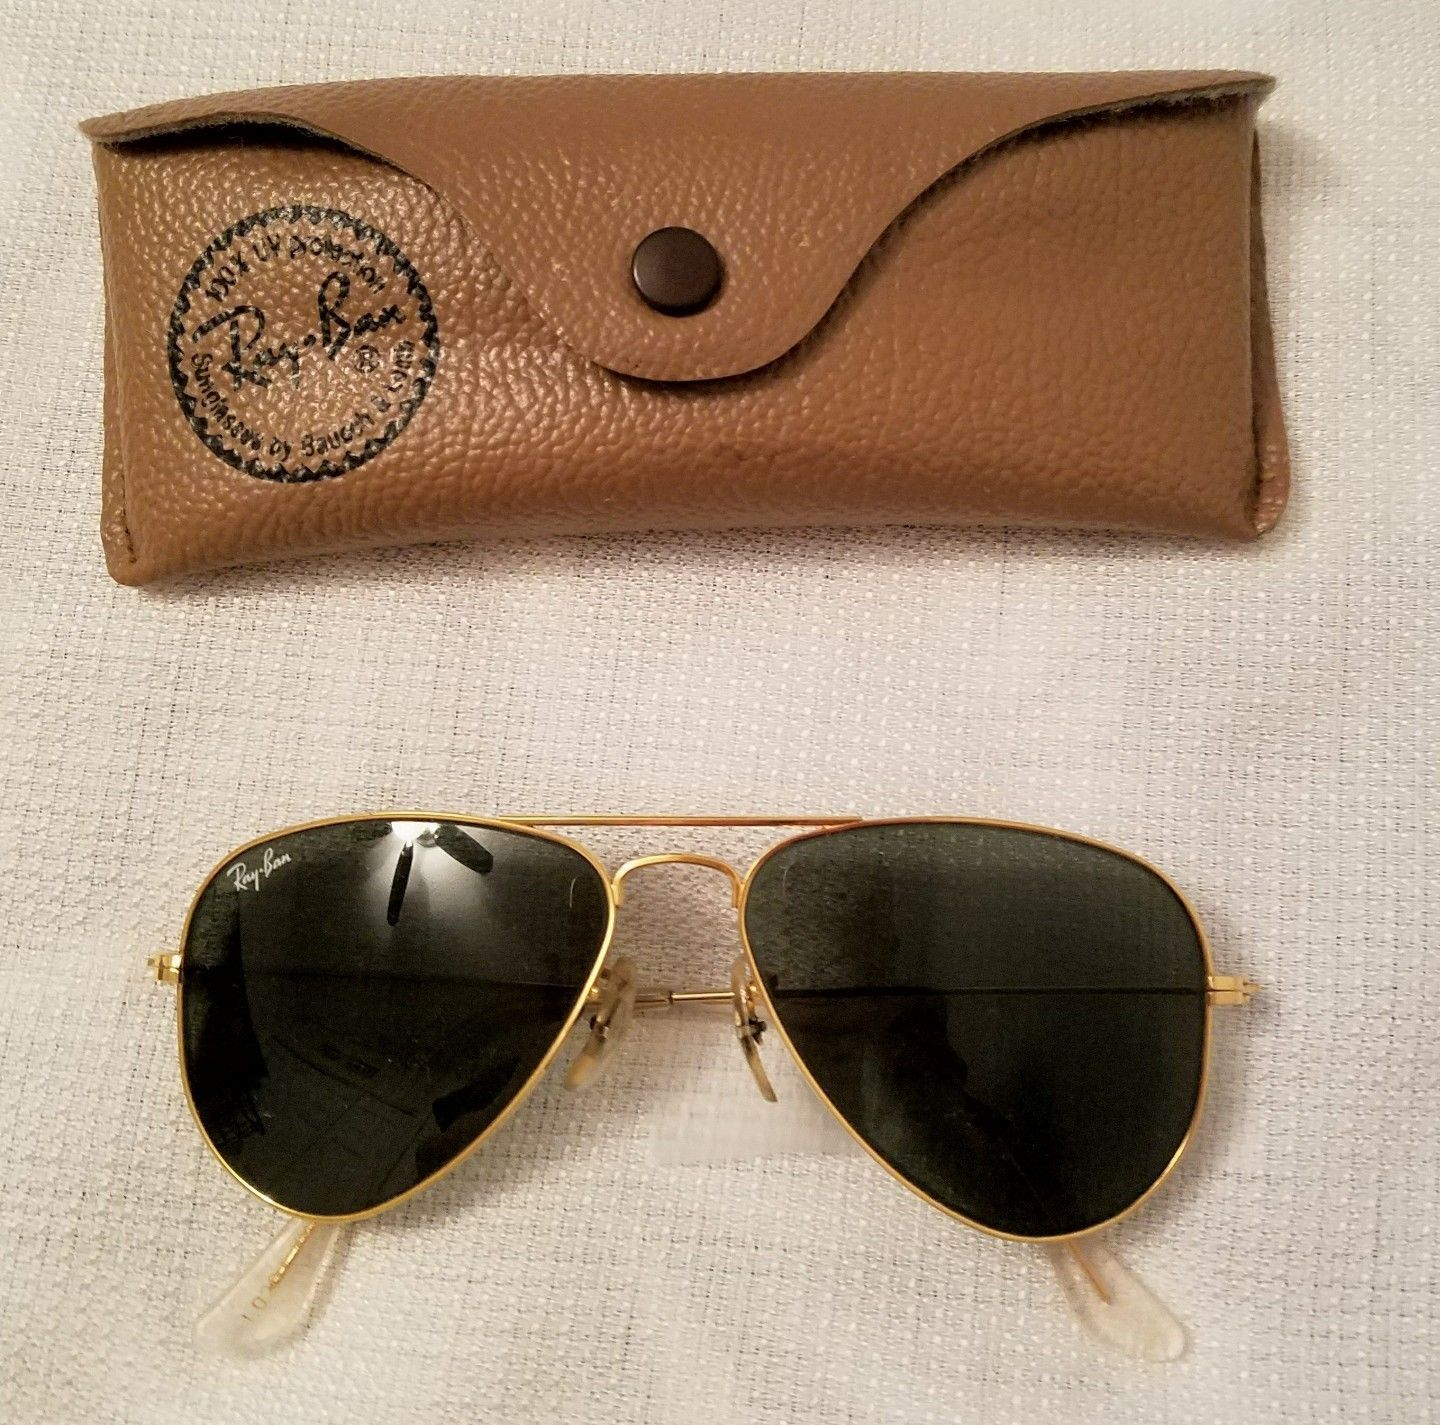 Vintage RAY-BAN Aviator Sunglasses & Case - Gold Frame/Green Glass ...